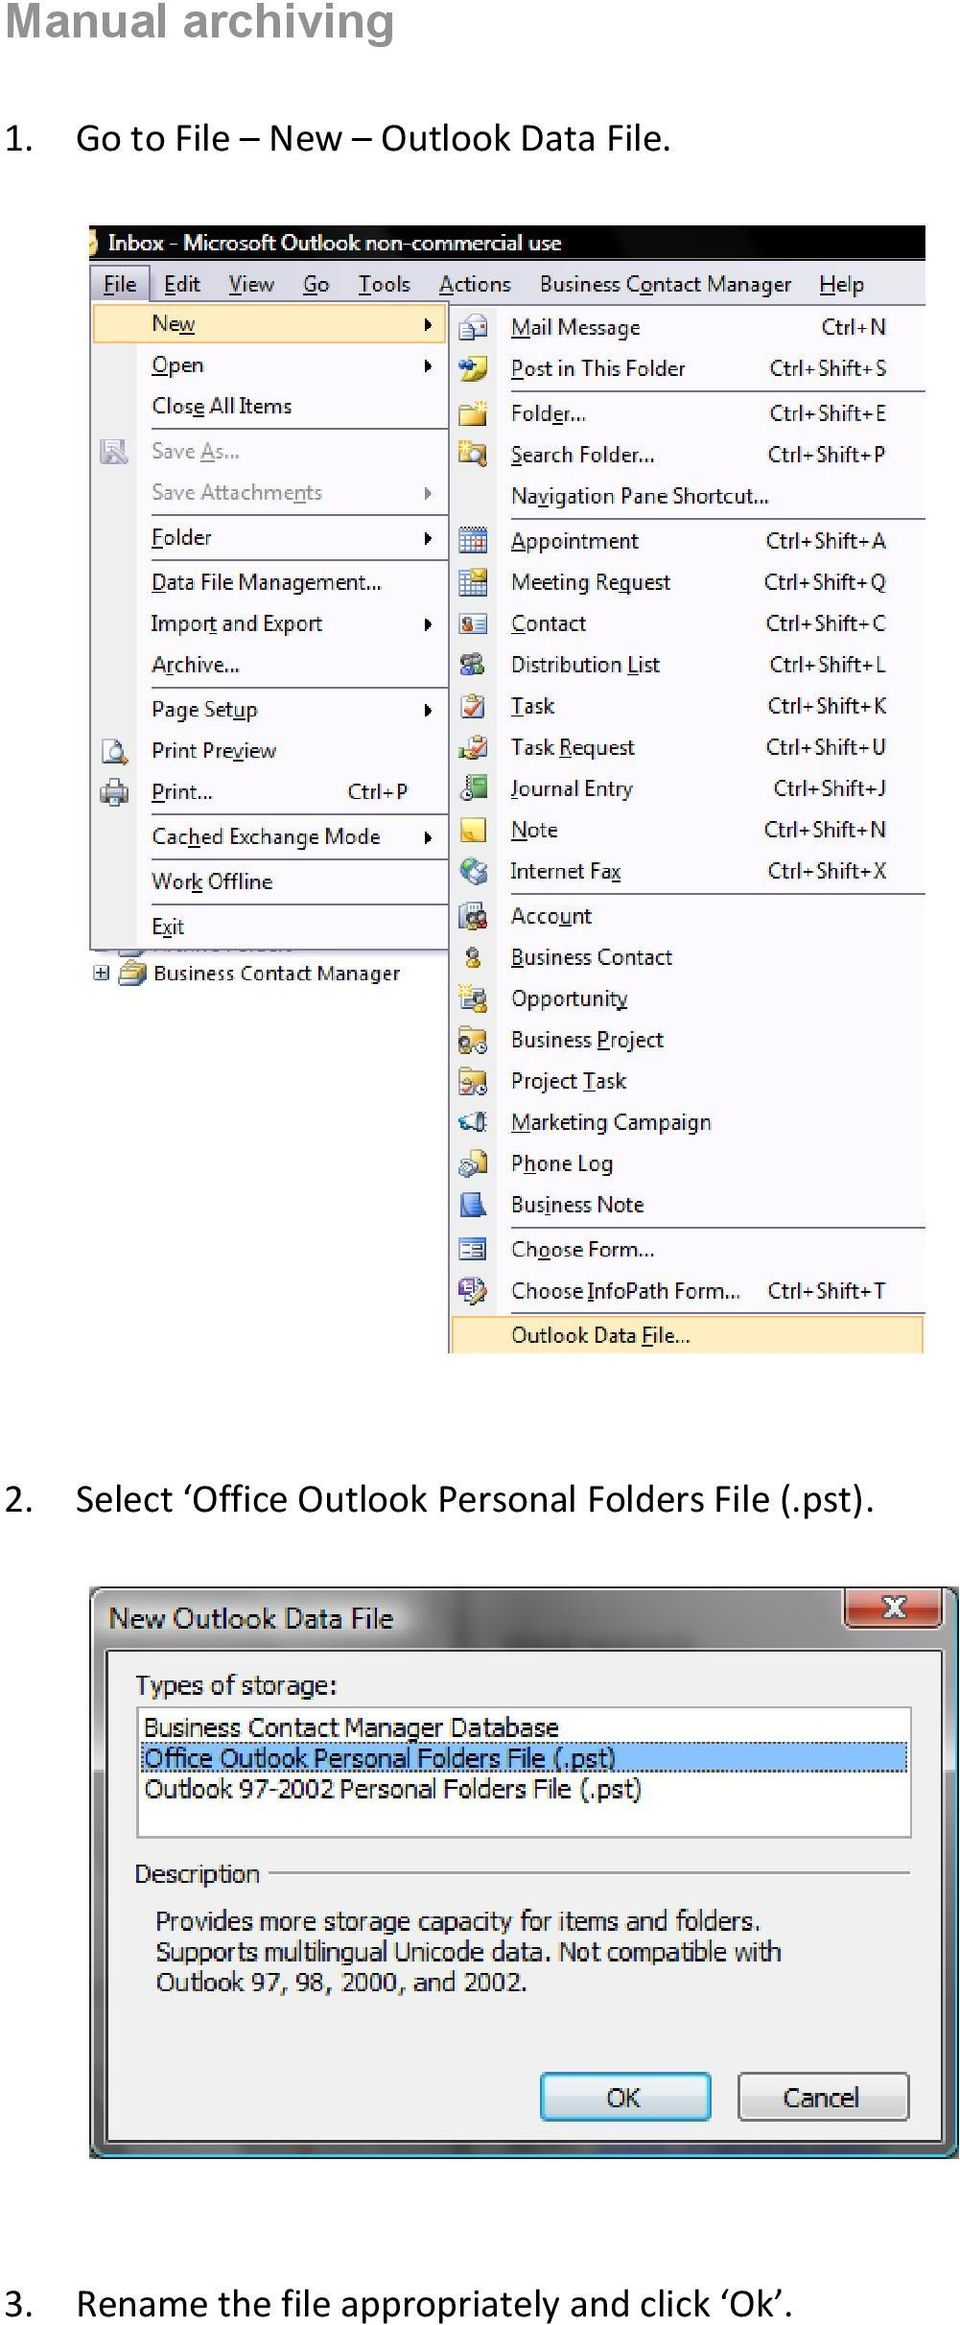 Select Office Outlook Personal Folders